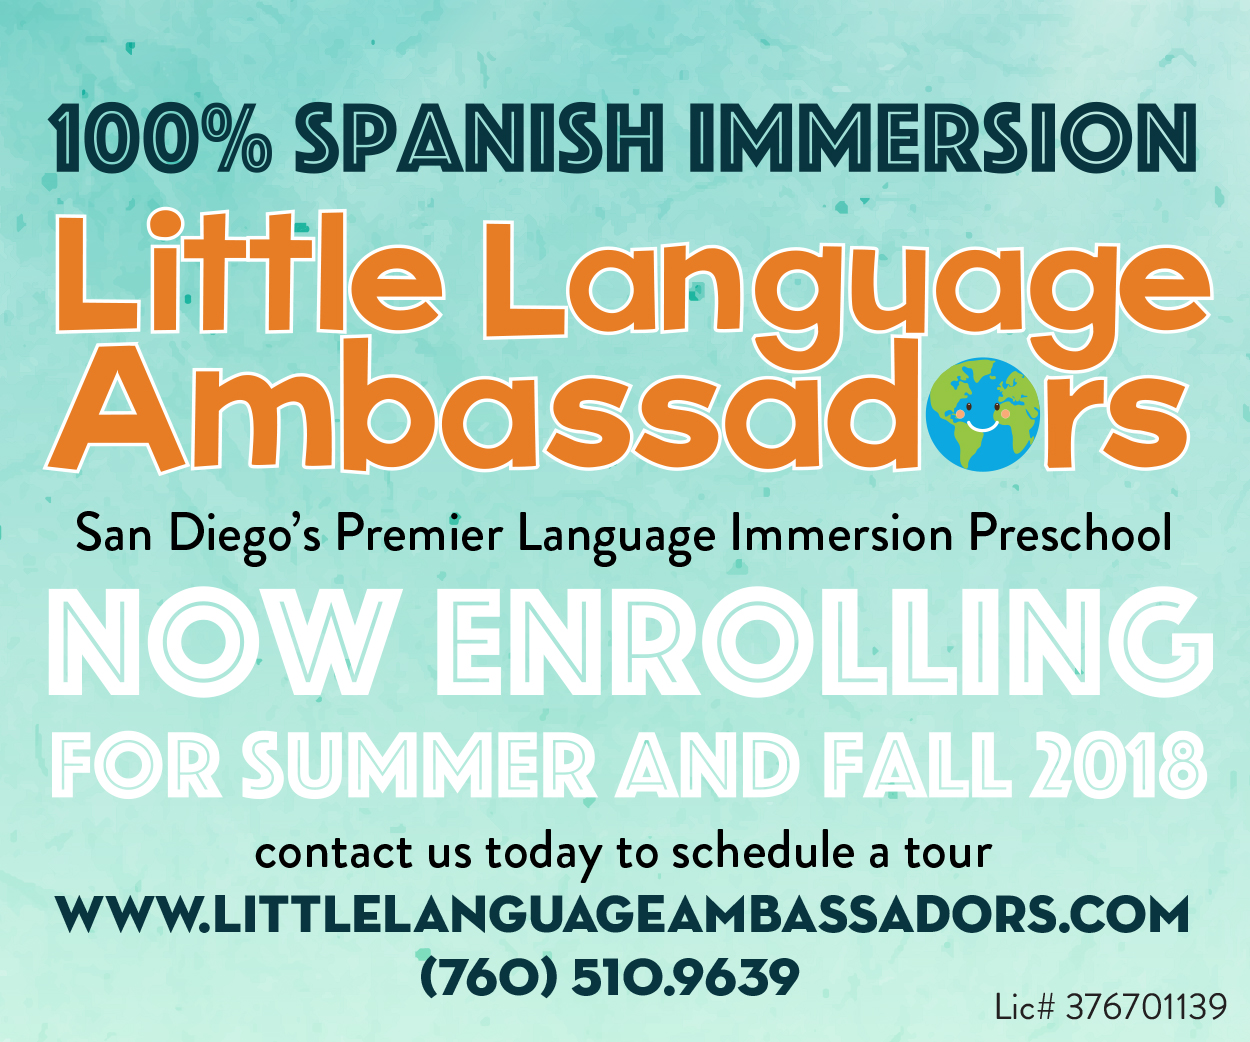 Little Language Ambassadors